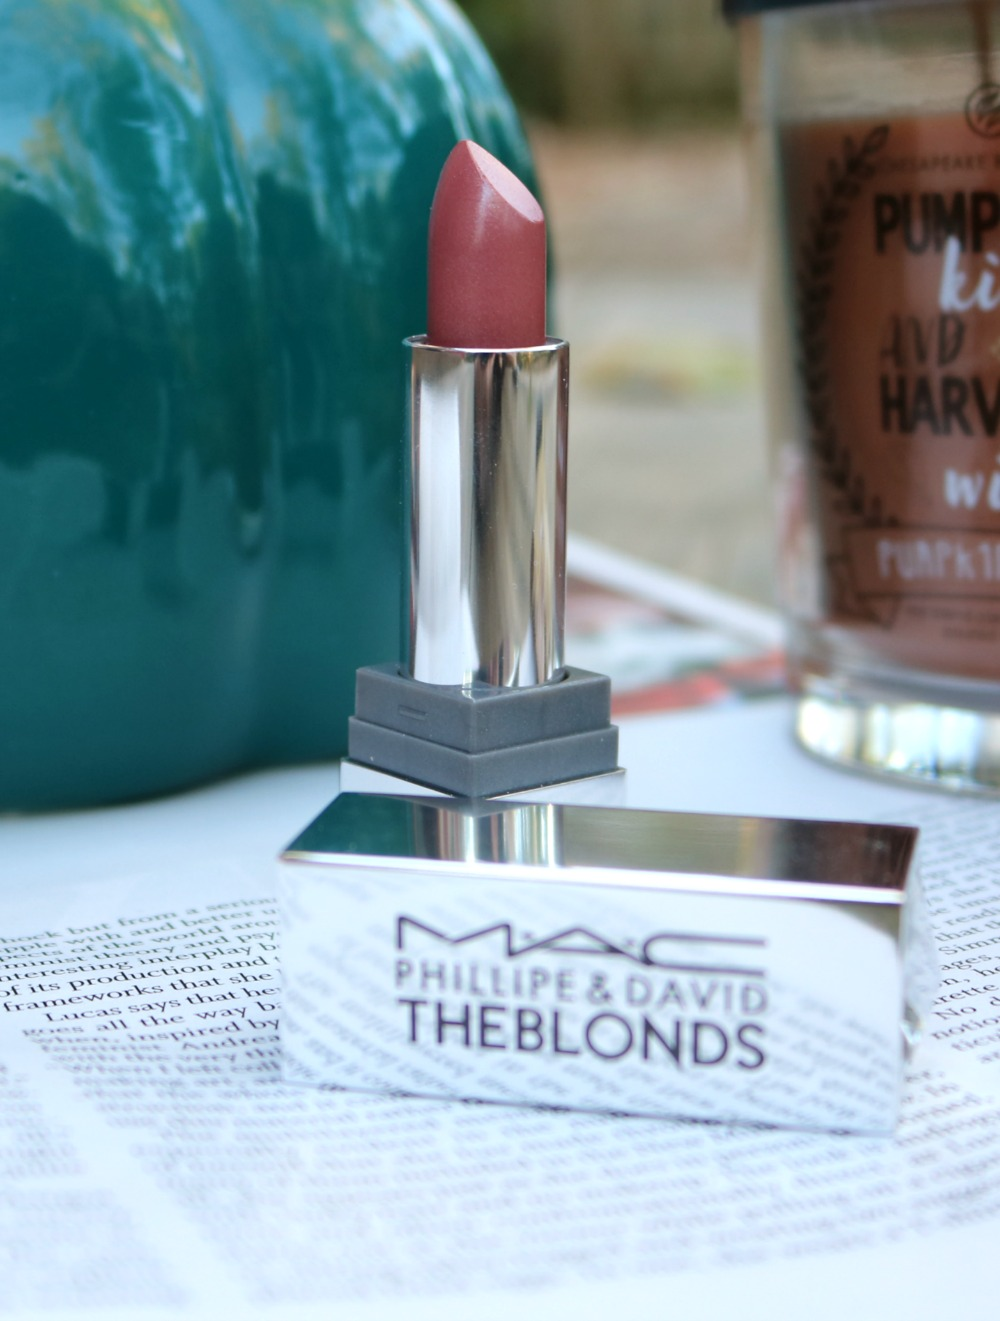 The Blonds Mac Lipstick in 'DavidBlond' I DreaminLace.com #Lipstick #Mac #Makeup